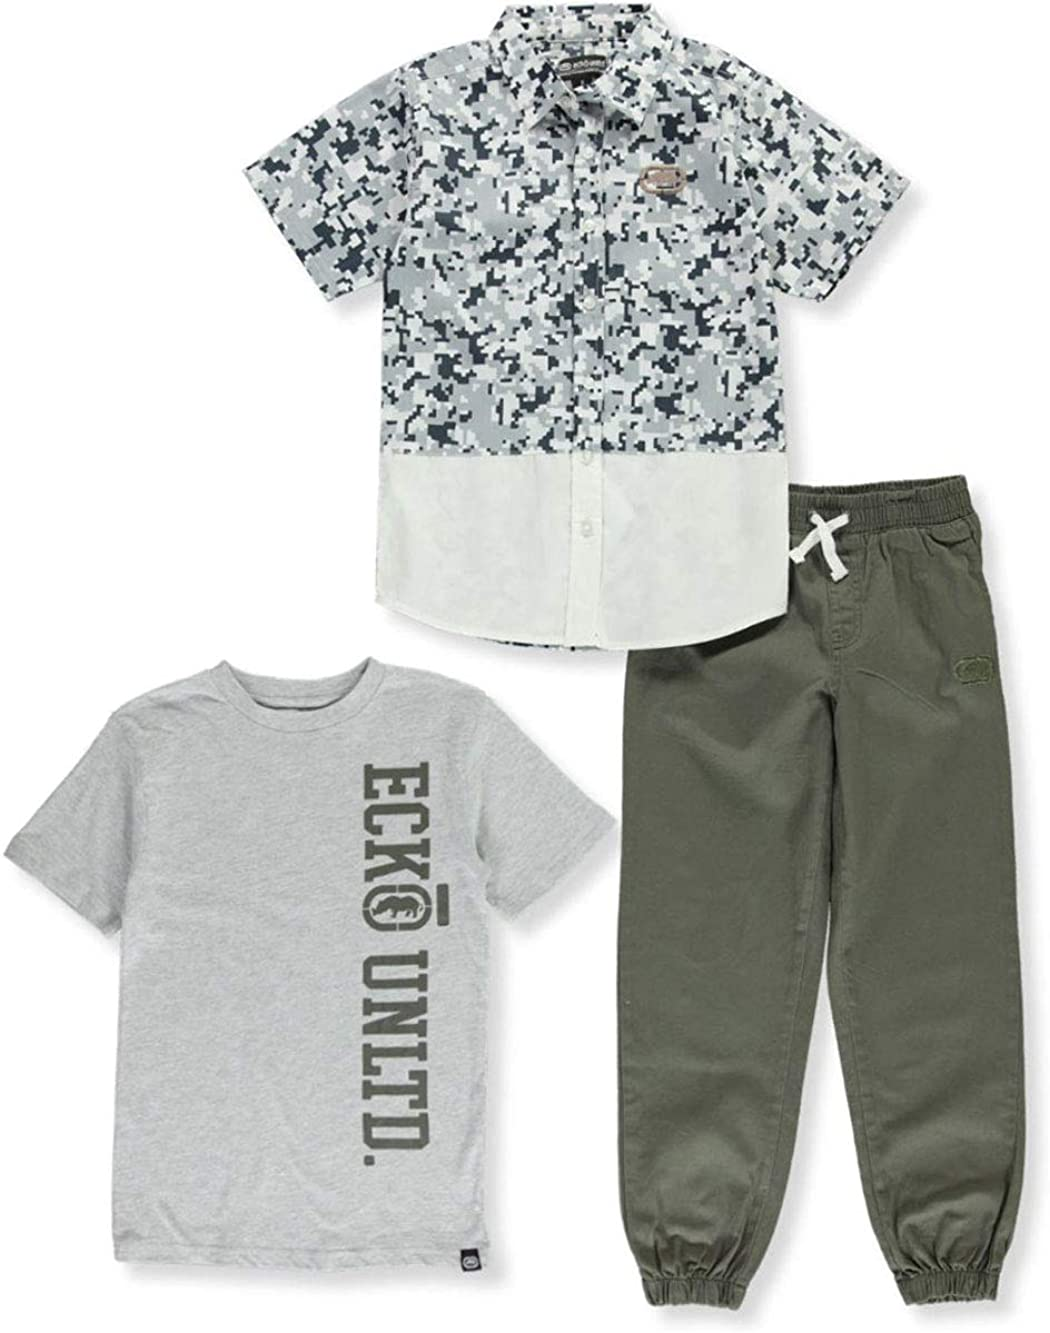 Ecko Boys Short Sleeve Woven T-Shirt and Pant Set